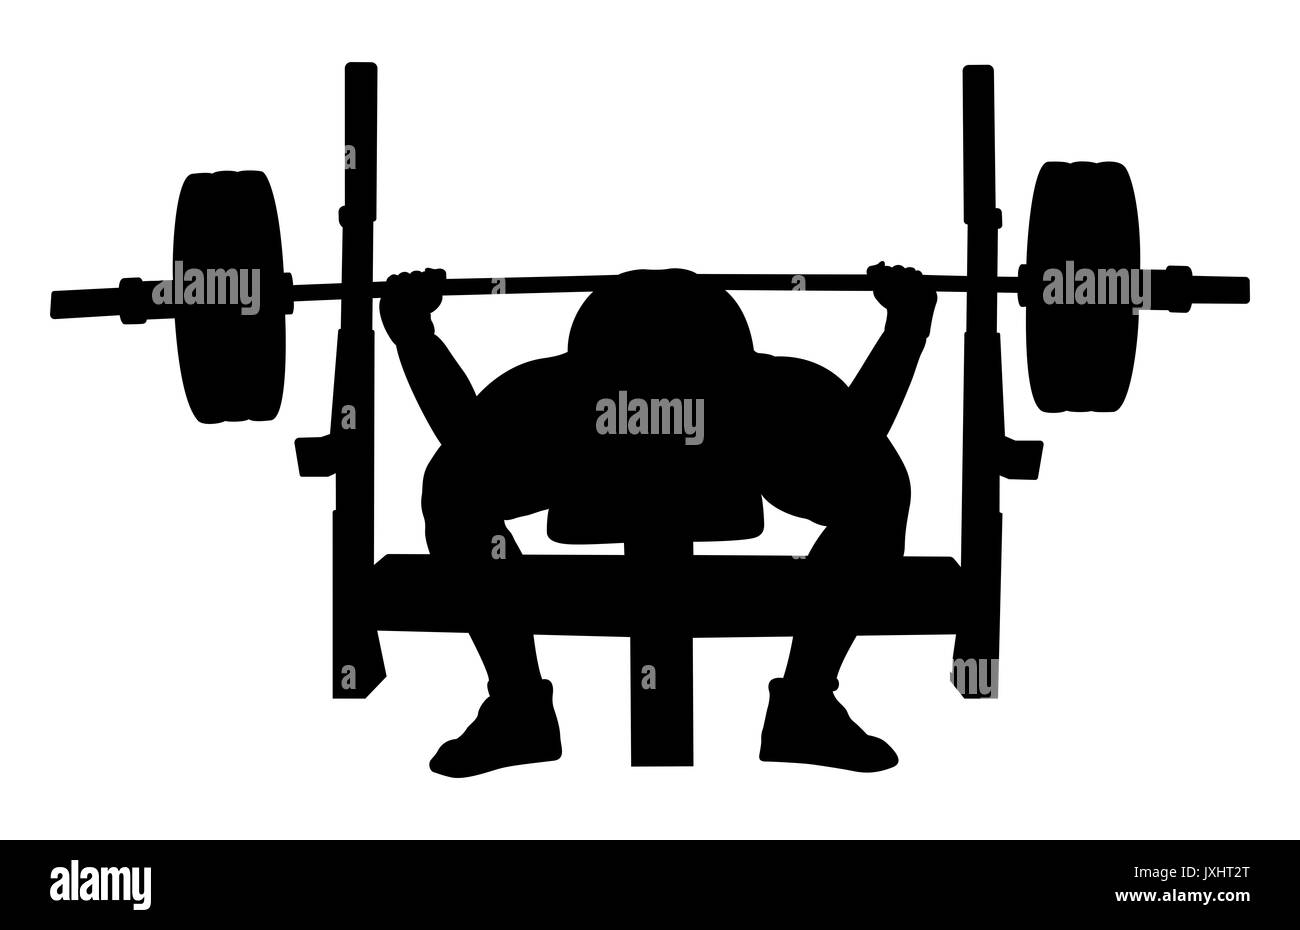 Phenomenal Deadlift Cut Out Stock Images Pictures Alamy Gmtry Best Dining Table And Chair Ideas Images Gmtryco